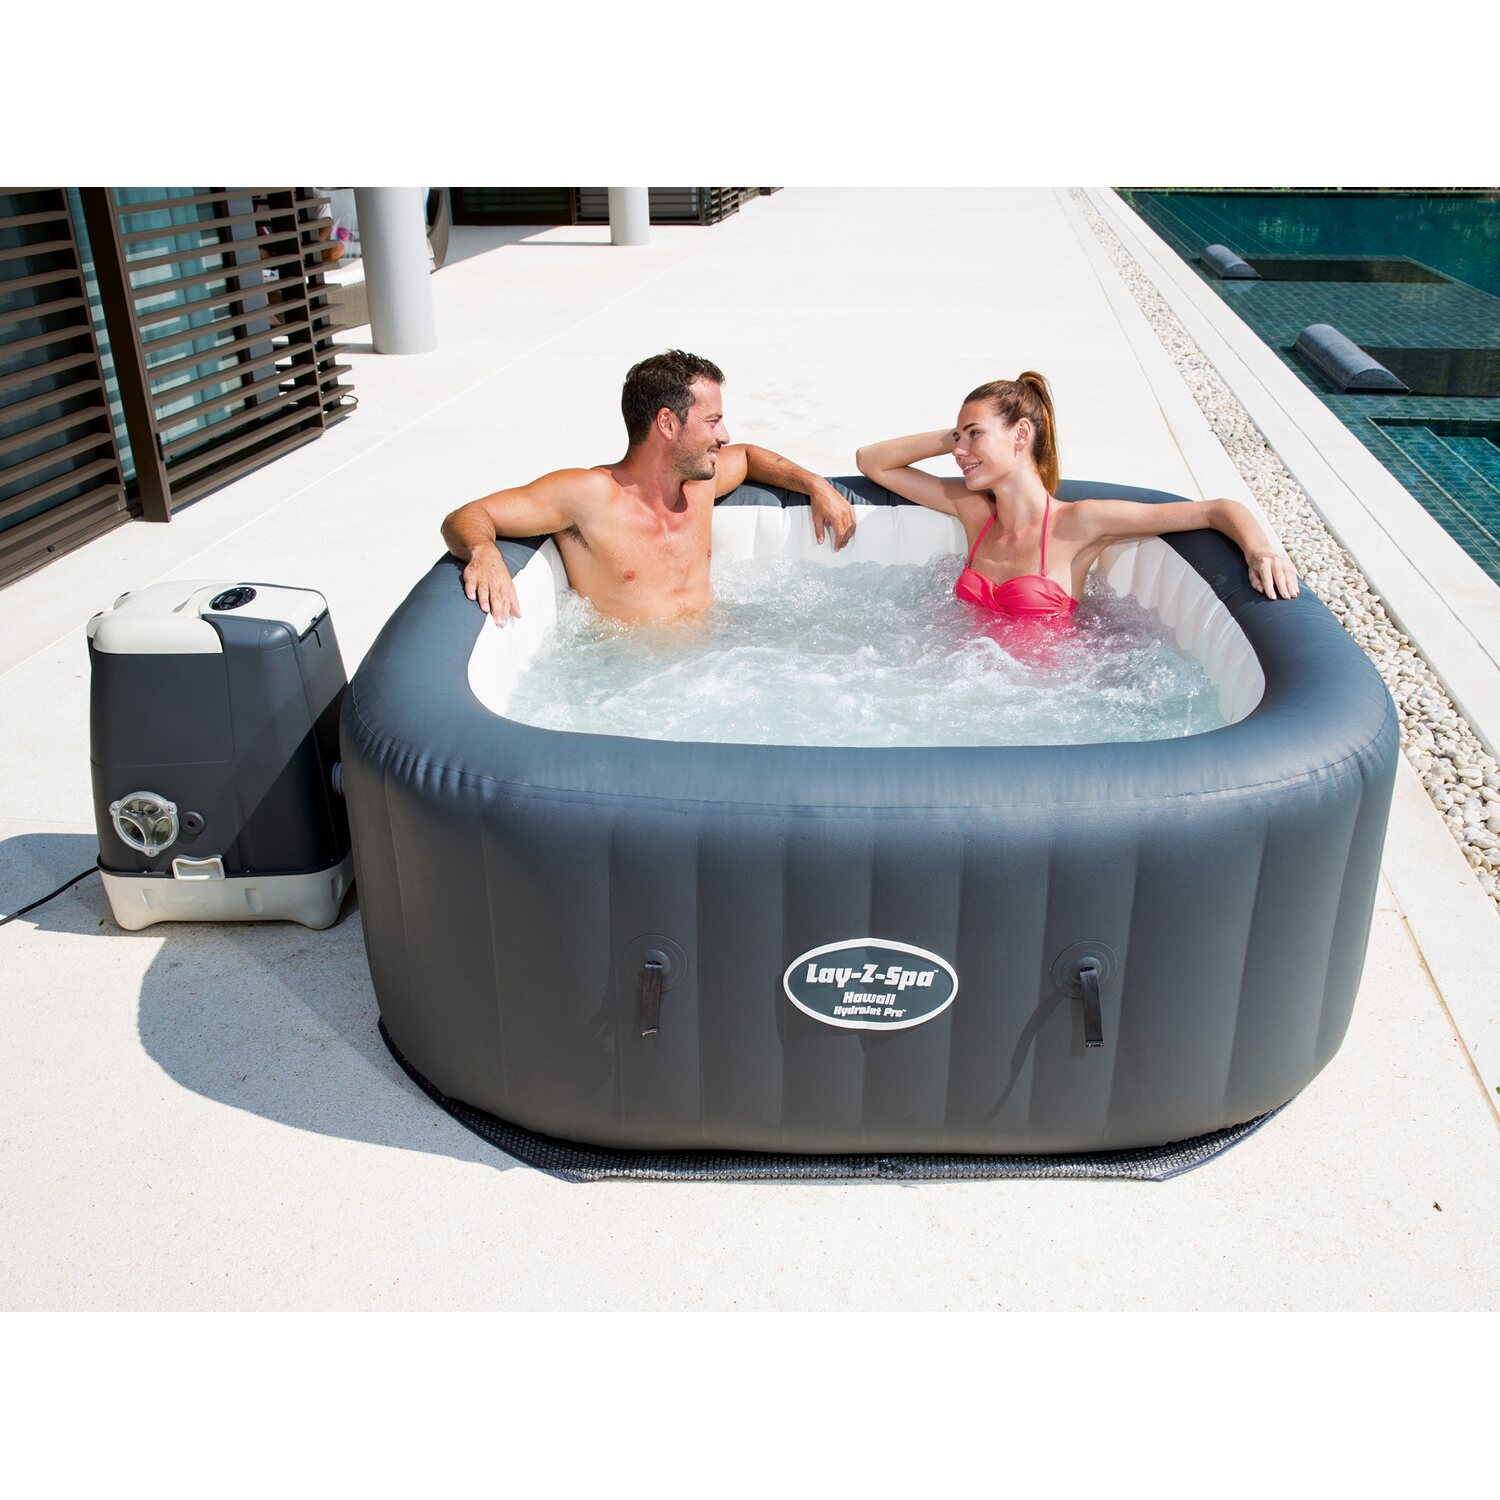 Bestway whirlpool lay z spa hawaii hydrojet pro kaufen bei obi for Swimming pools bei obi